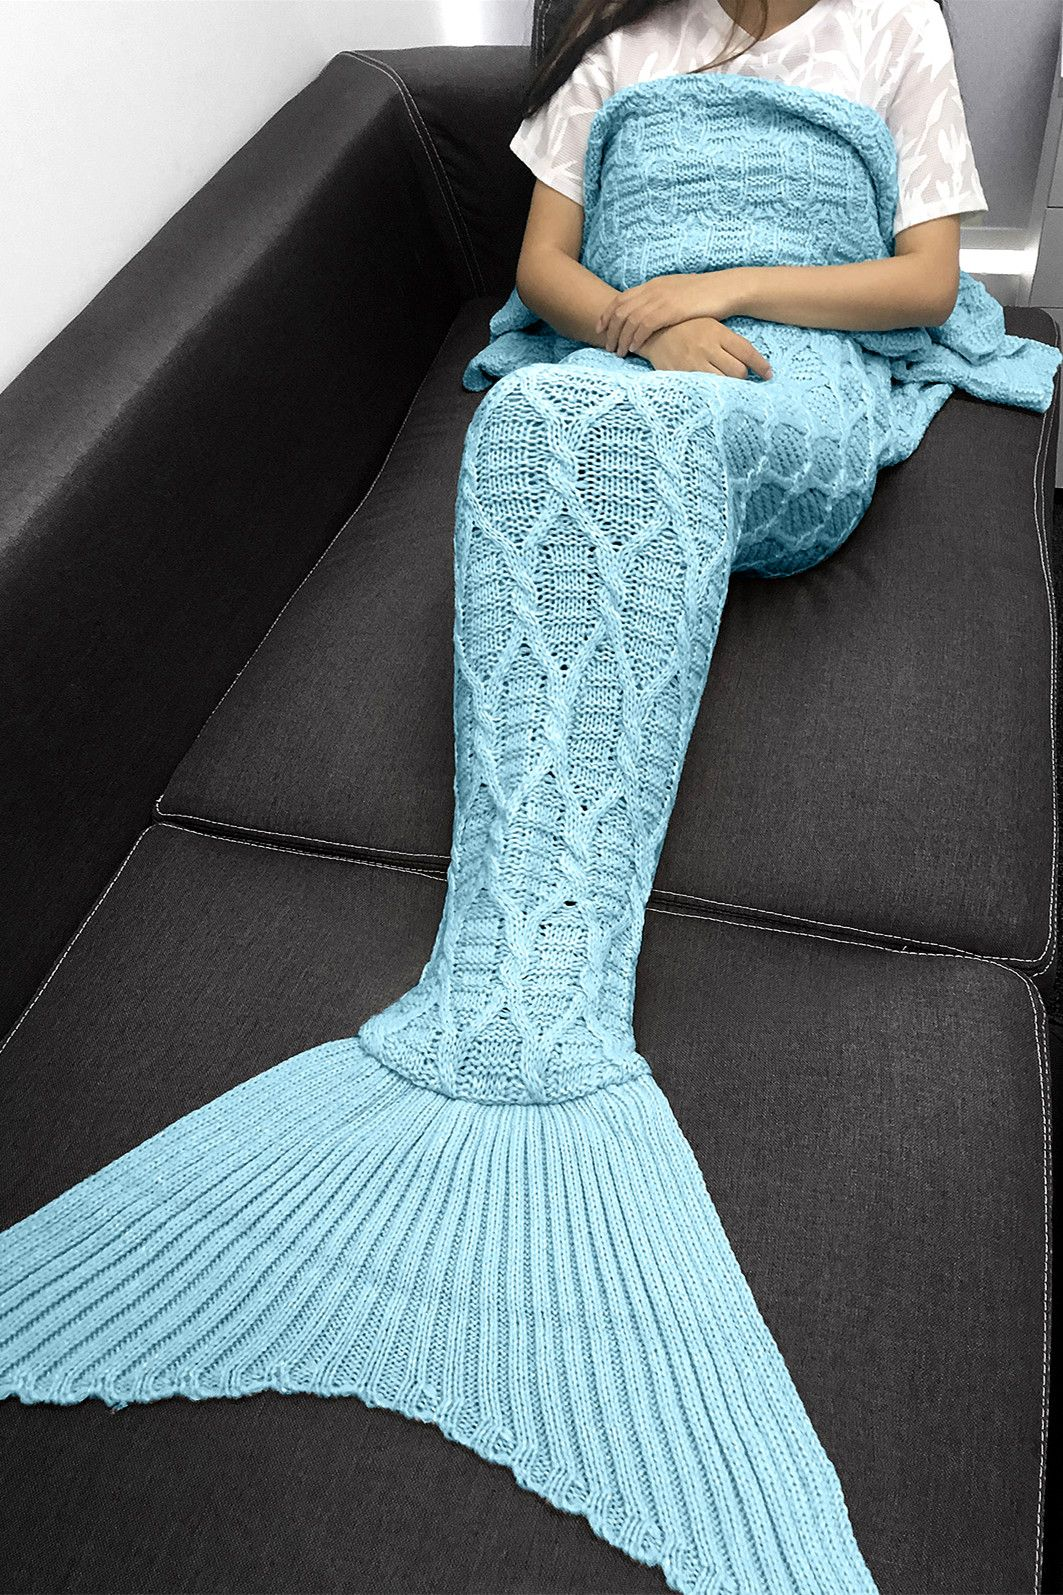 Simple style solid color crochet knitting geometric pattern 2144 simple style solid color crochet knitting geometric pattern mermaid tail design blanket bankloansurffo Choice Image